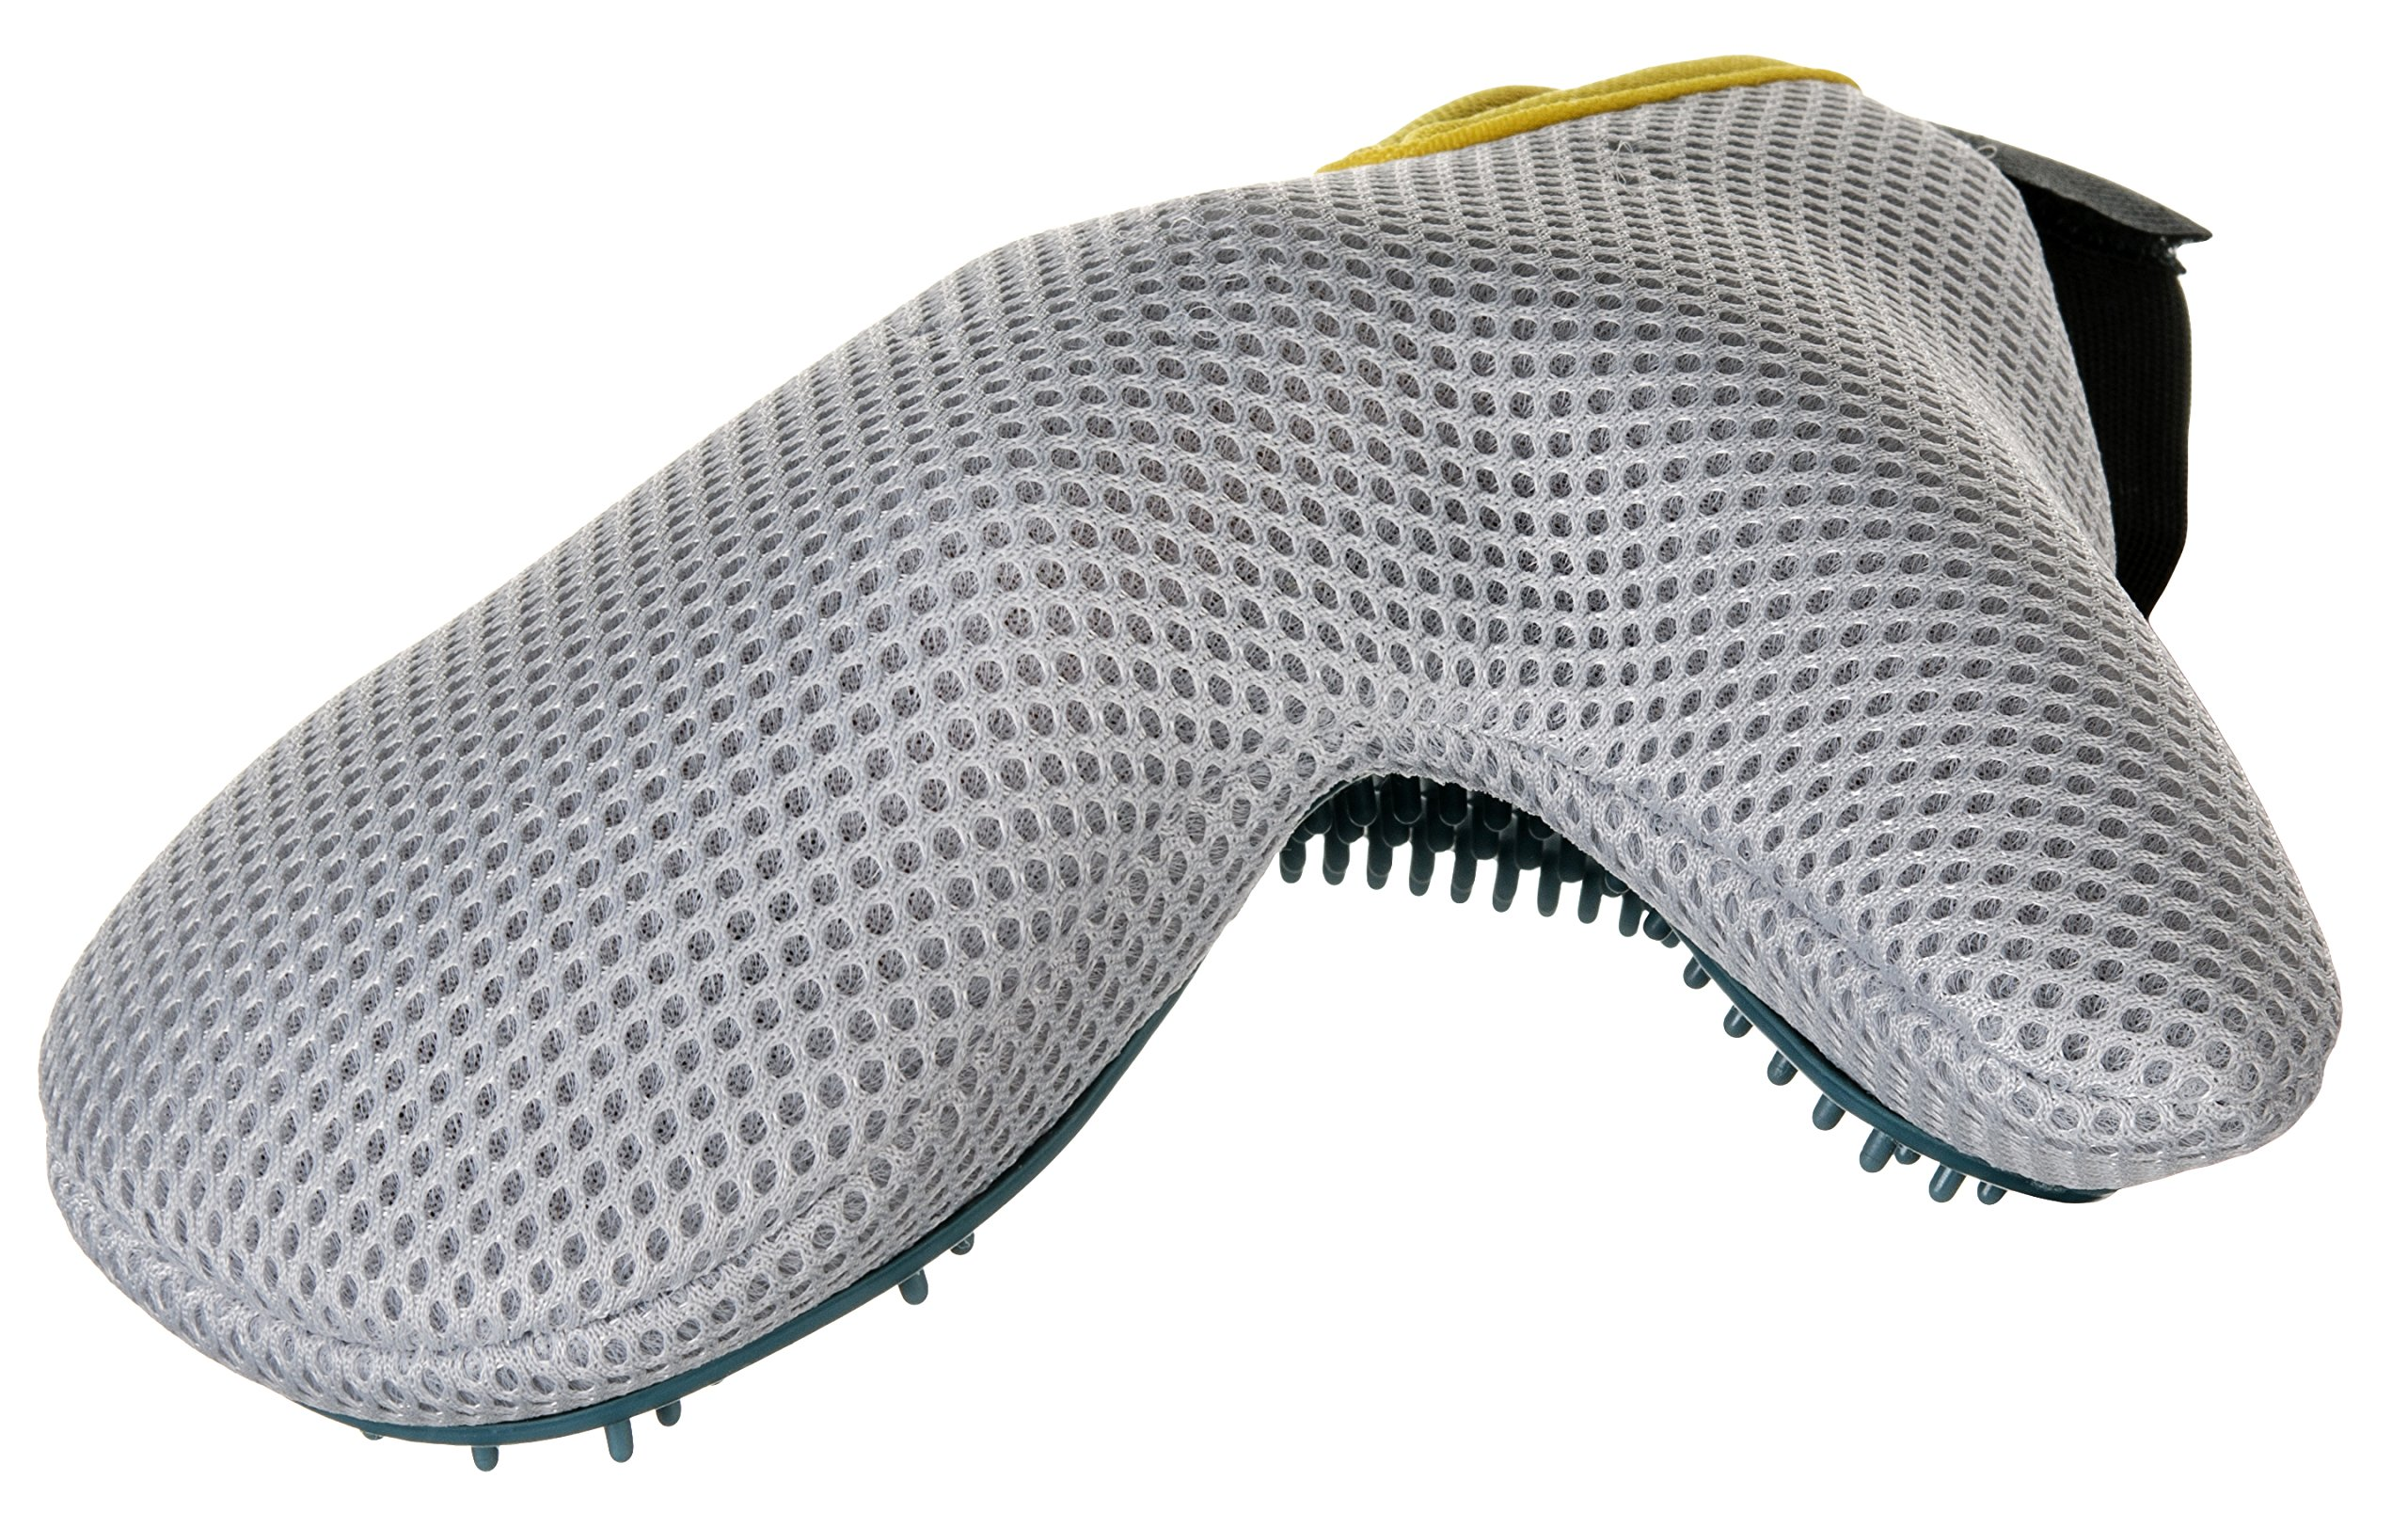 The Groomin' Glove - Pet Grooming Glove Brush and Bathing Mitt by BoundlessPets - Versatile Long and Short Hair Animal Fur Deshedding Tool and Massage Comb for Cats, Dogs, Ferrets, Horses & More